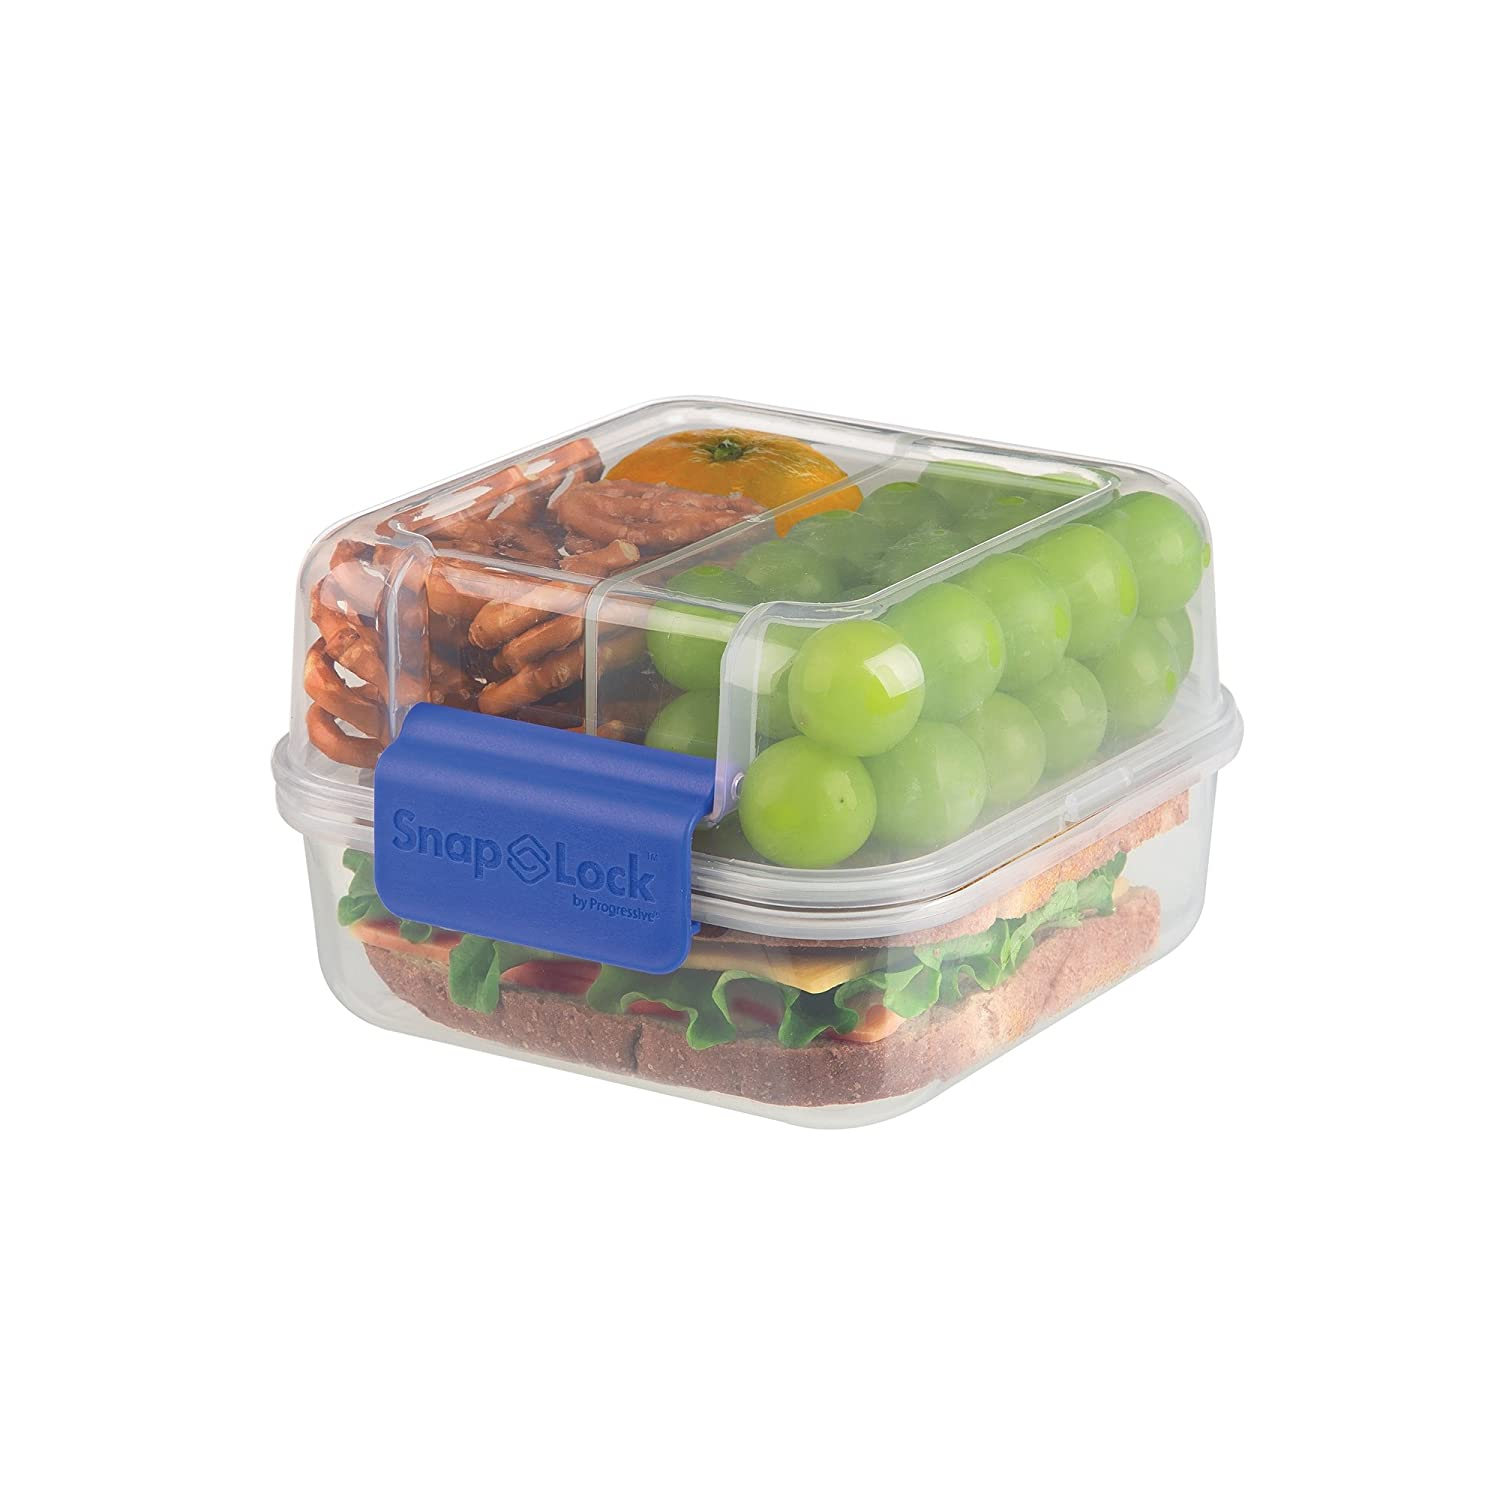 SnapLock by Progressive Lunch Cube To-Go Container, Blue Progressive International SNL-1005B